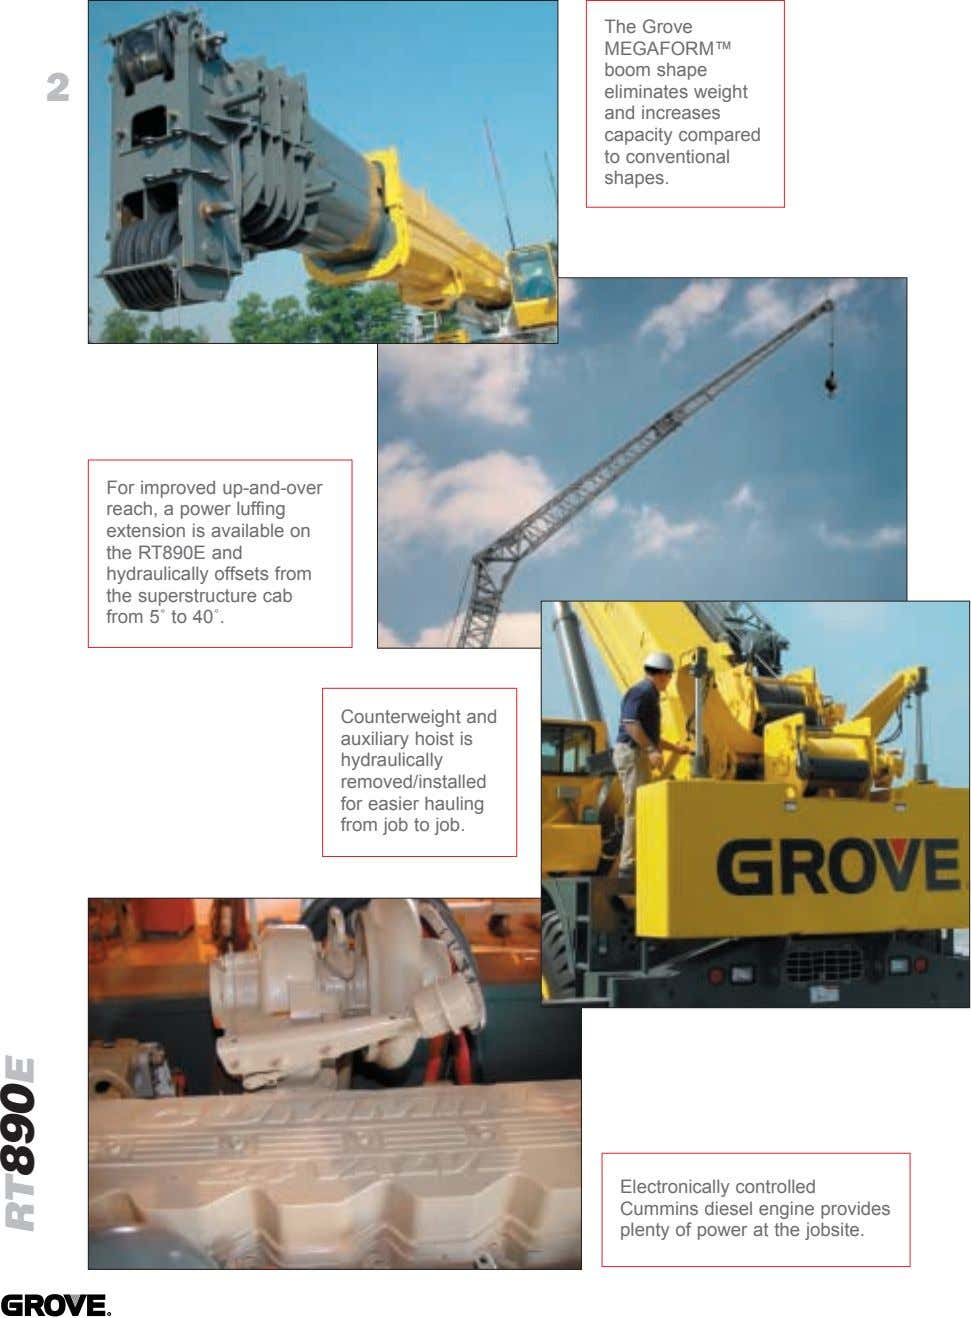 The Grove MEGAFORM™ boom shape 2 eliminates weight and increases capacity compared to conventional shapes.